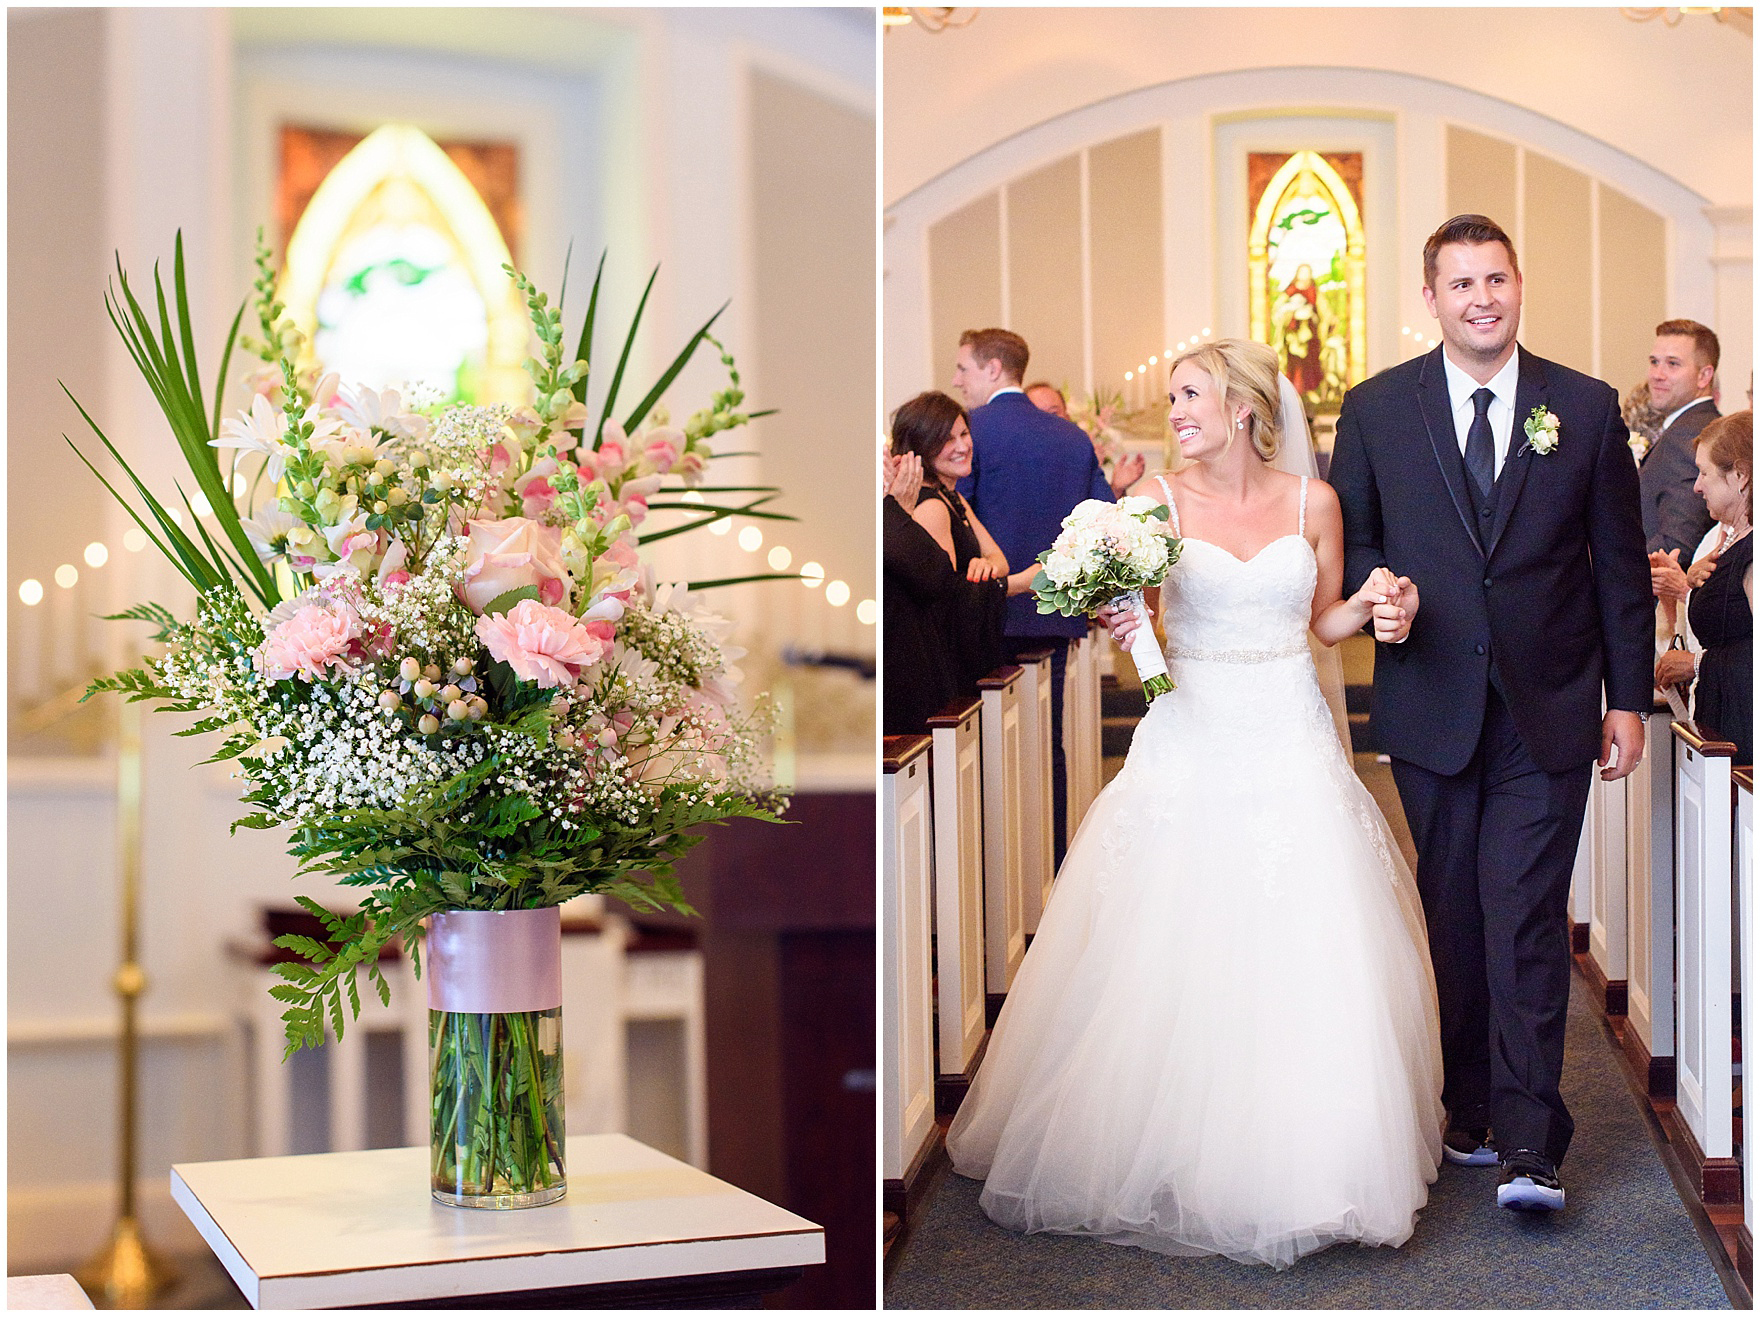 Itasca During Their The Bride And Groom Are All Smiles After Ceremony At First Presbyterian Church Of